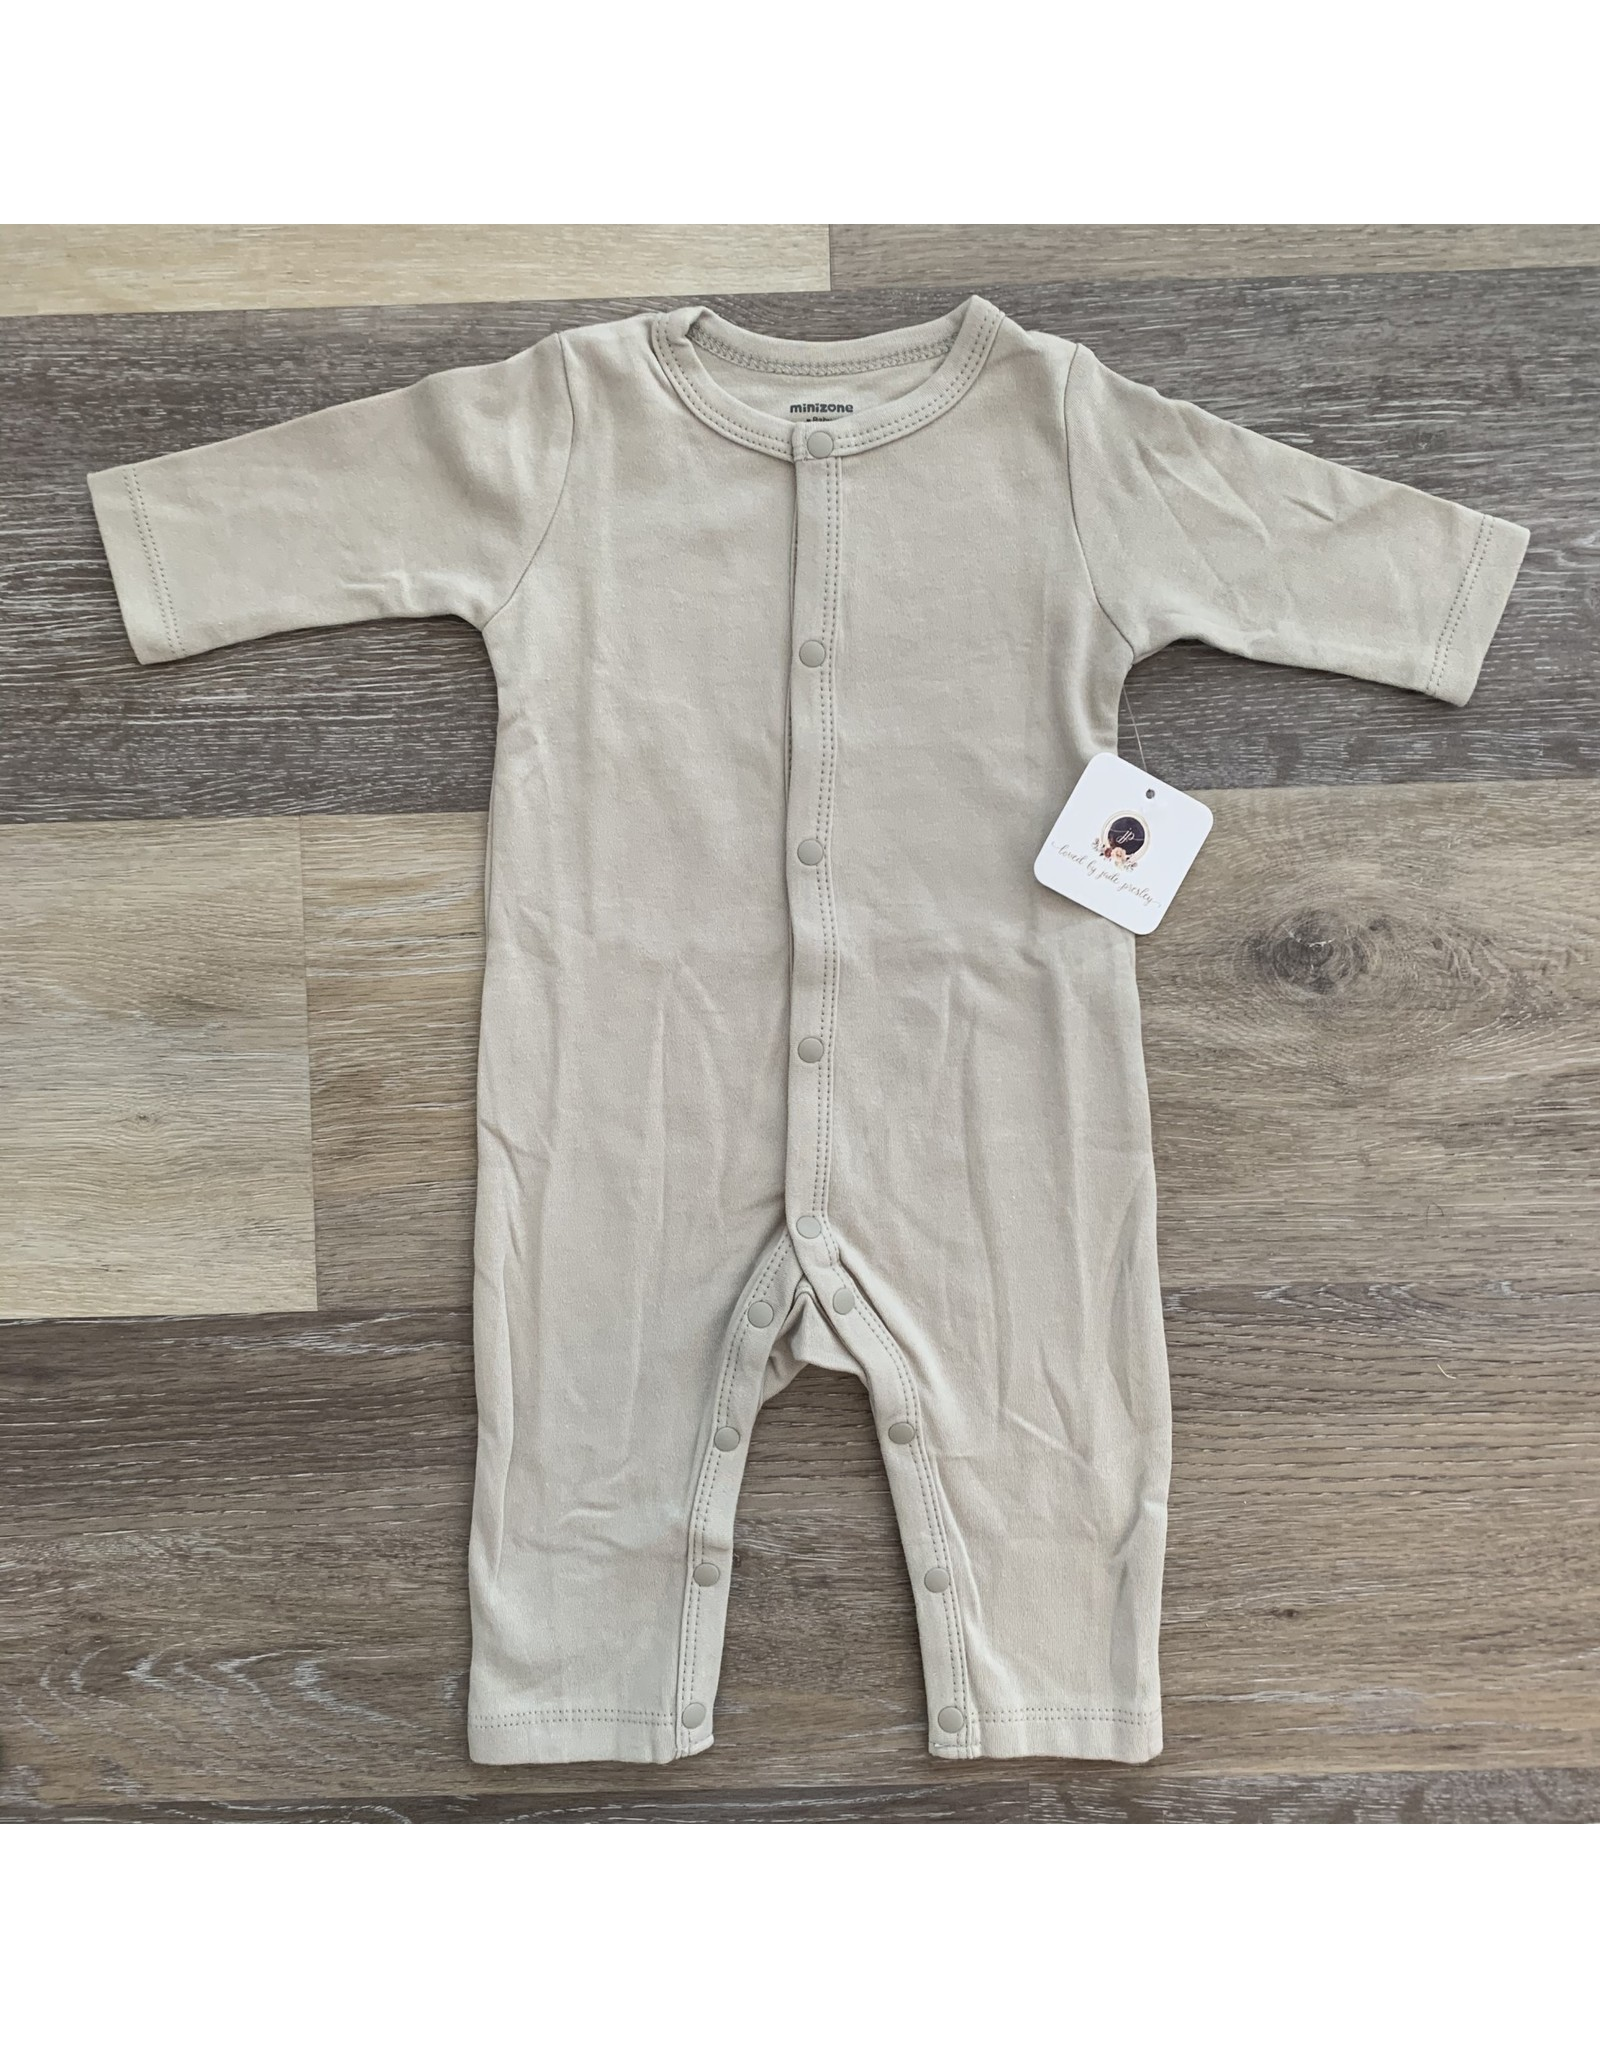 loved by Jade Presley loved by jade presley- Button Coverall: Grey